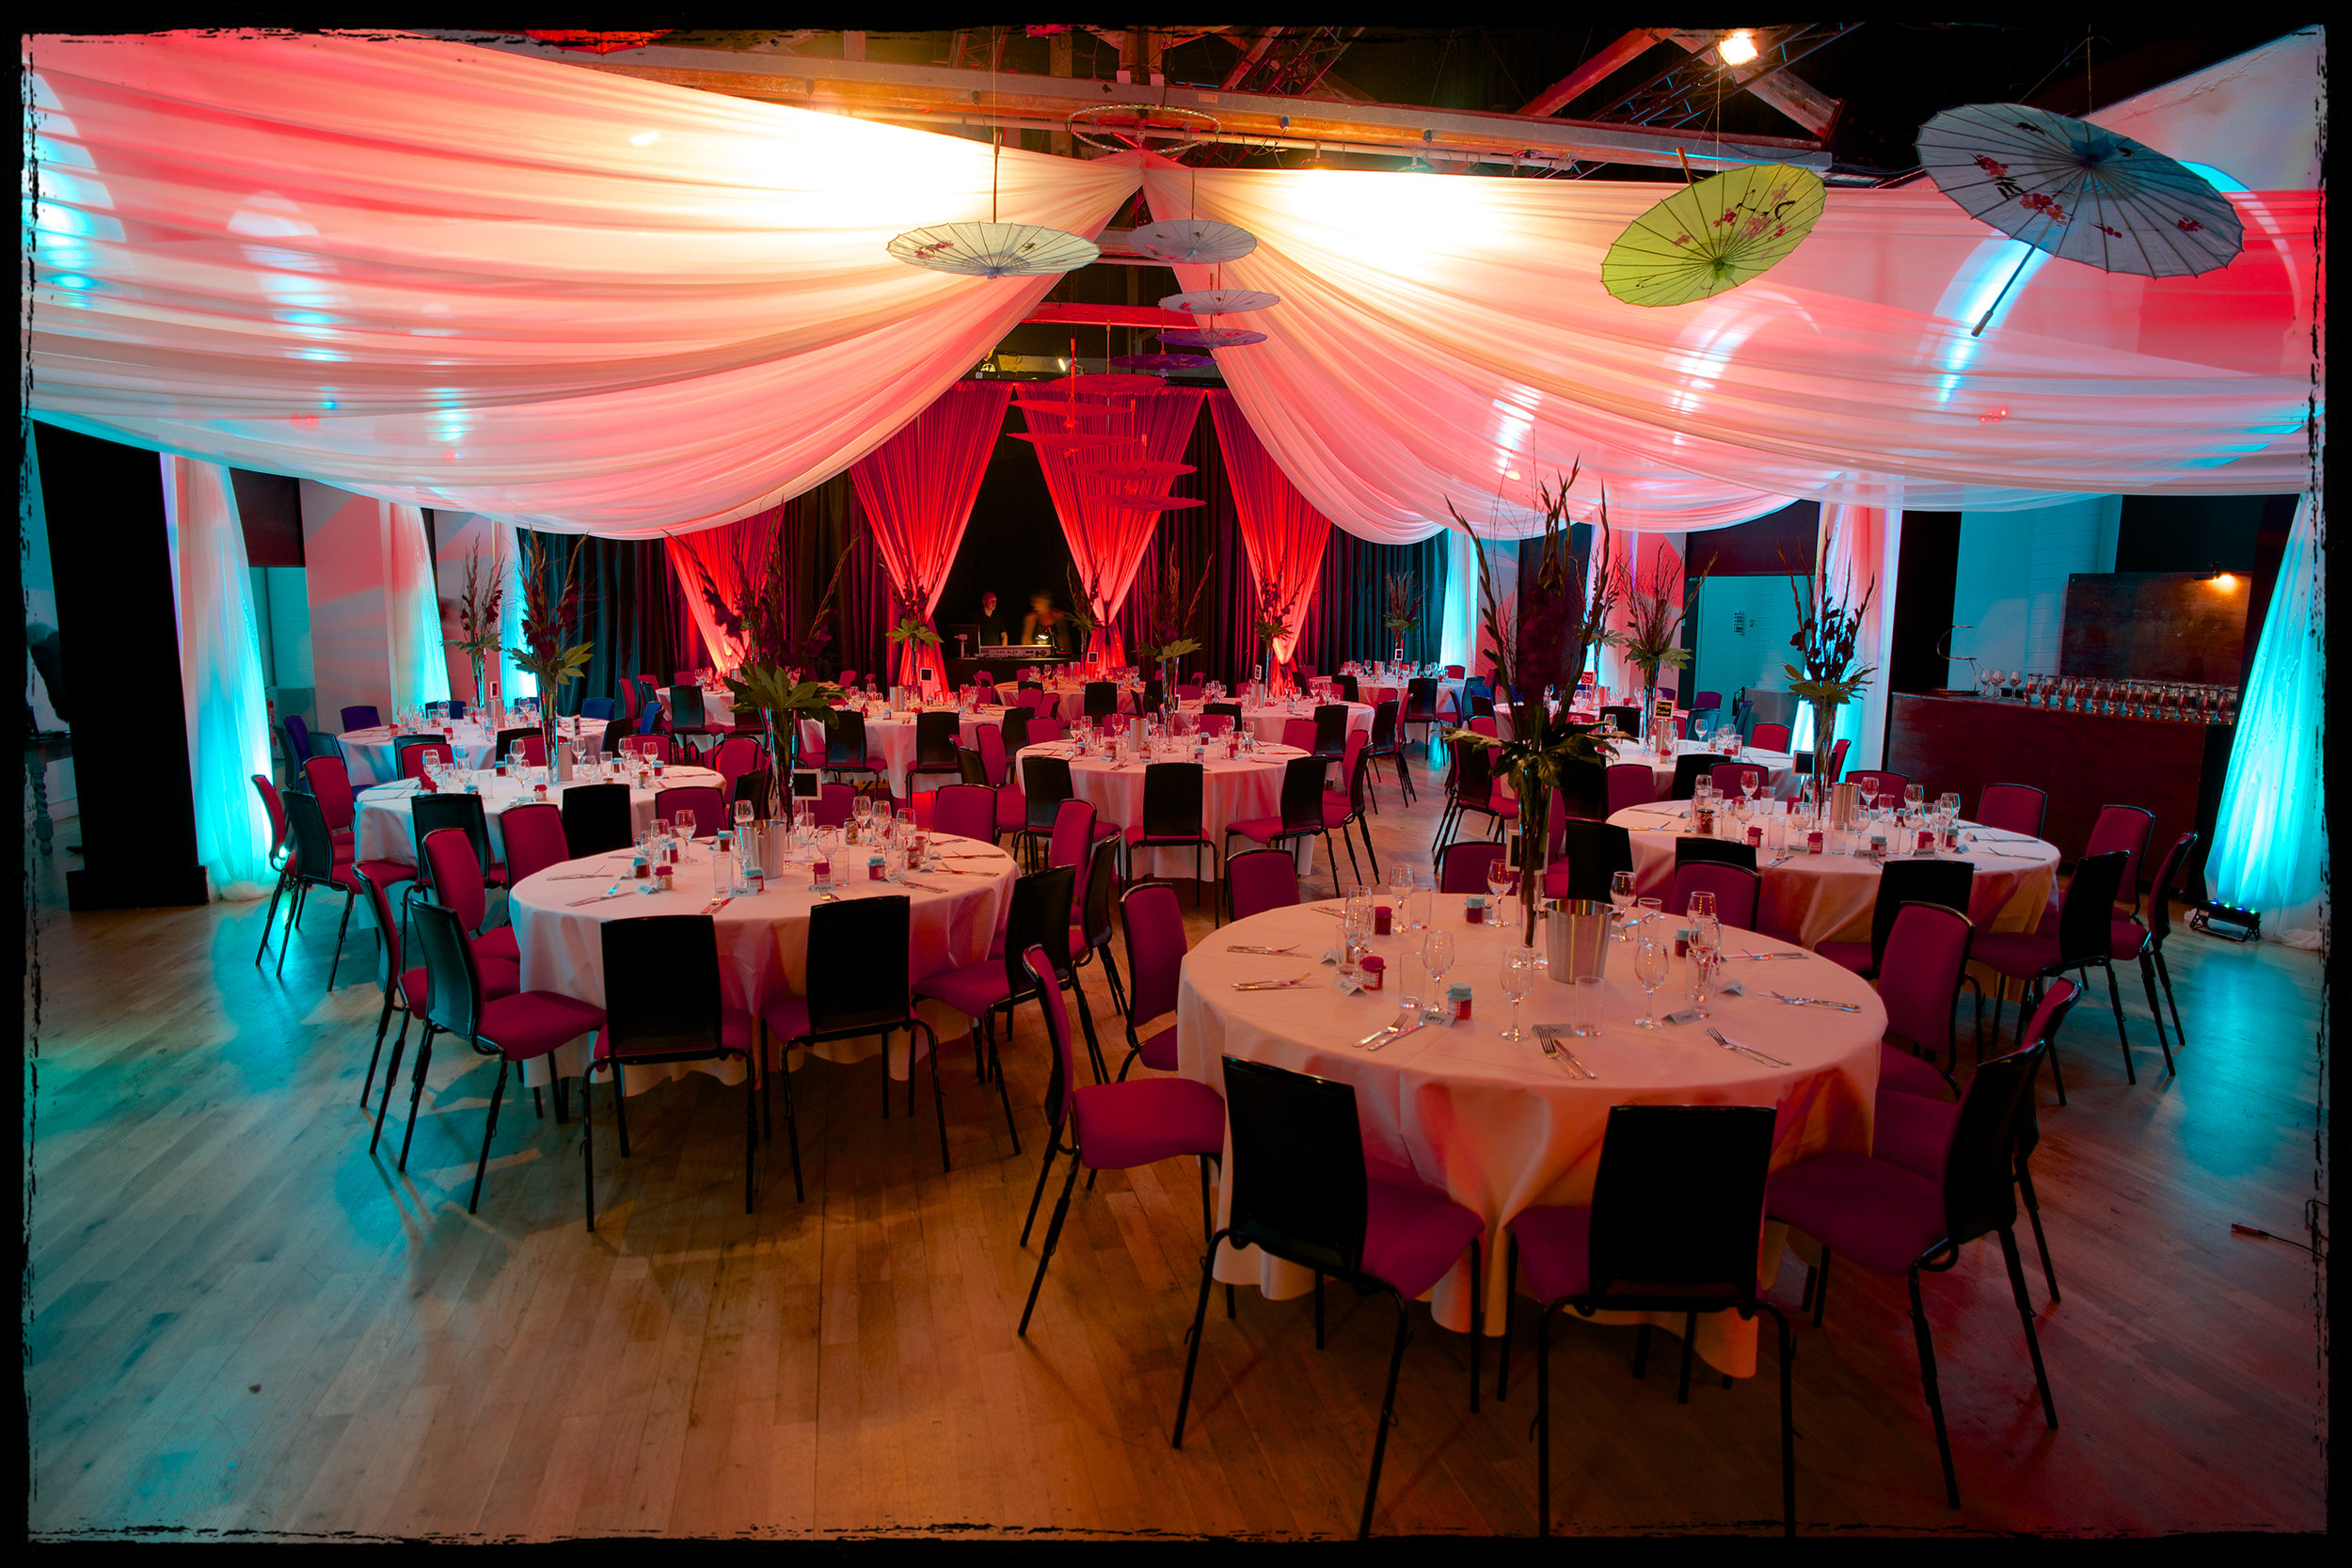 The main auditorium set up with cabaret tables for a party.